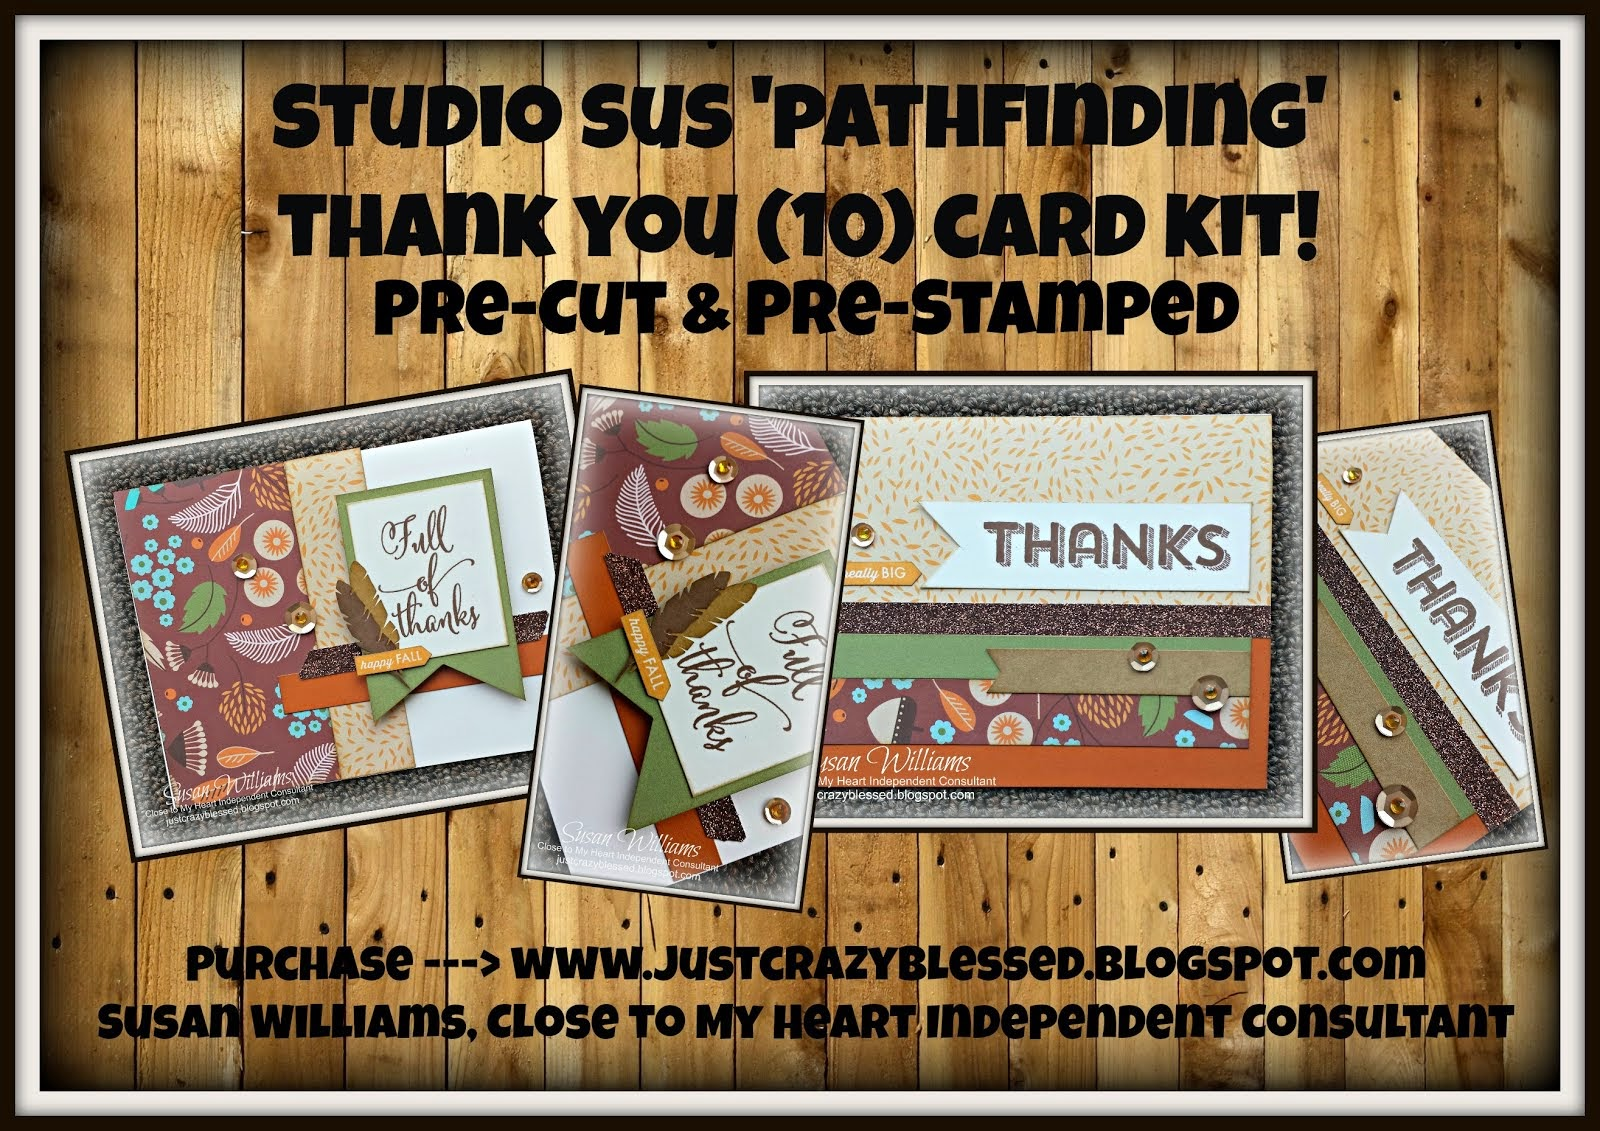 Pathfinding 'Thank You' Pre-Cut & Pre-Stamped (10) Card Kit!